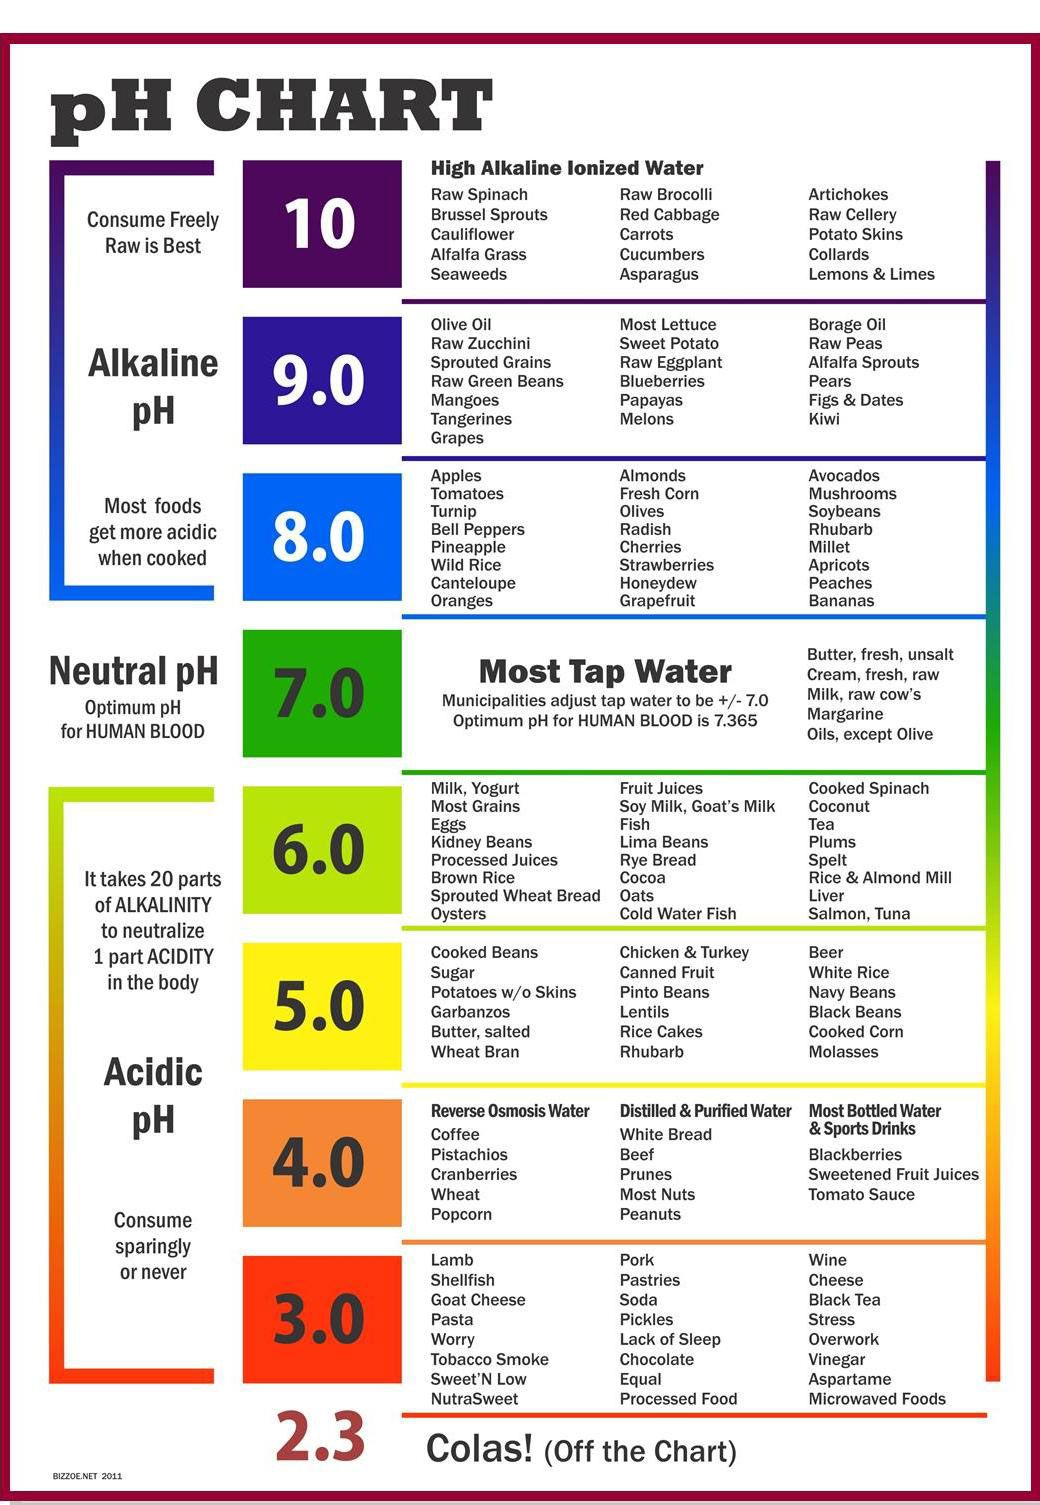 Image of printable water ph chart health pinterest ph image of printable water ph chart nvjuhfo Gallery